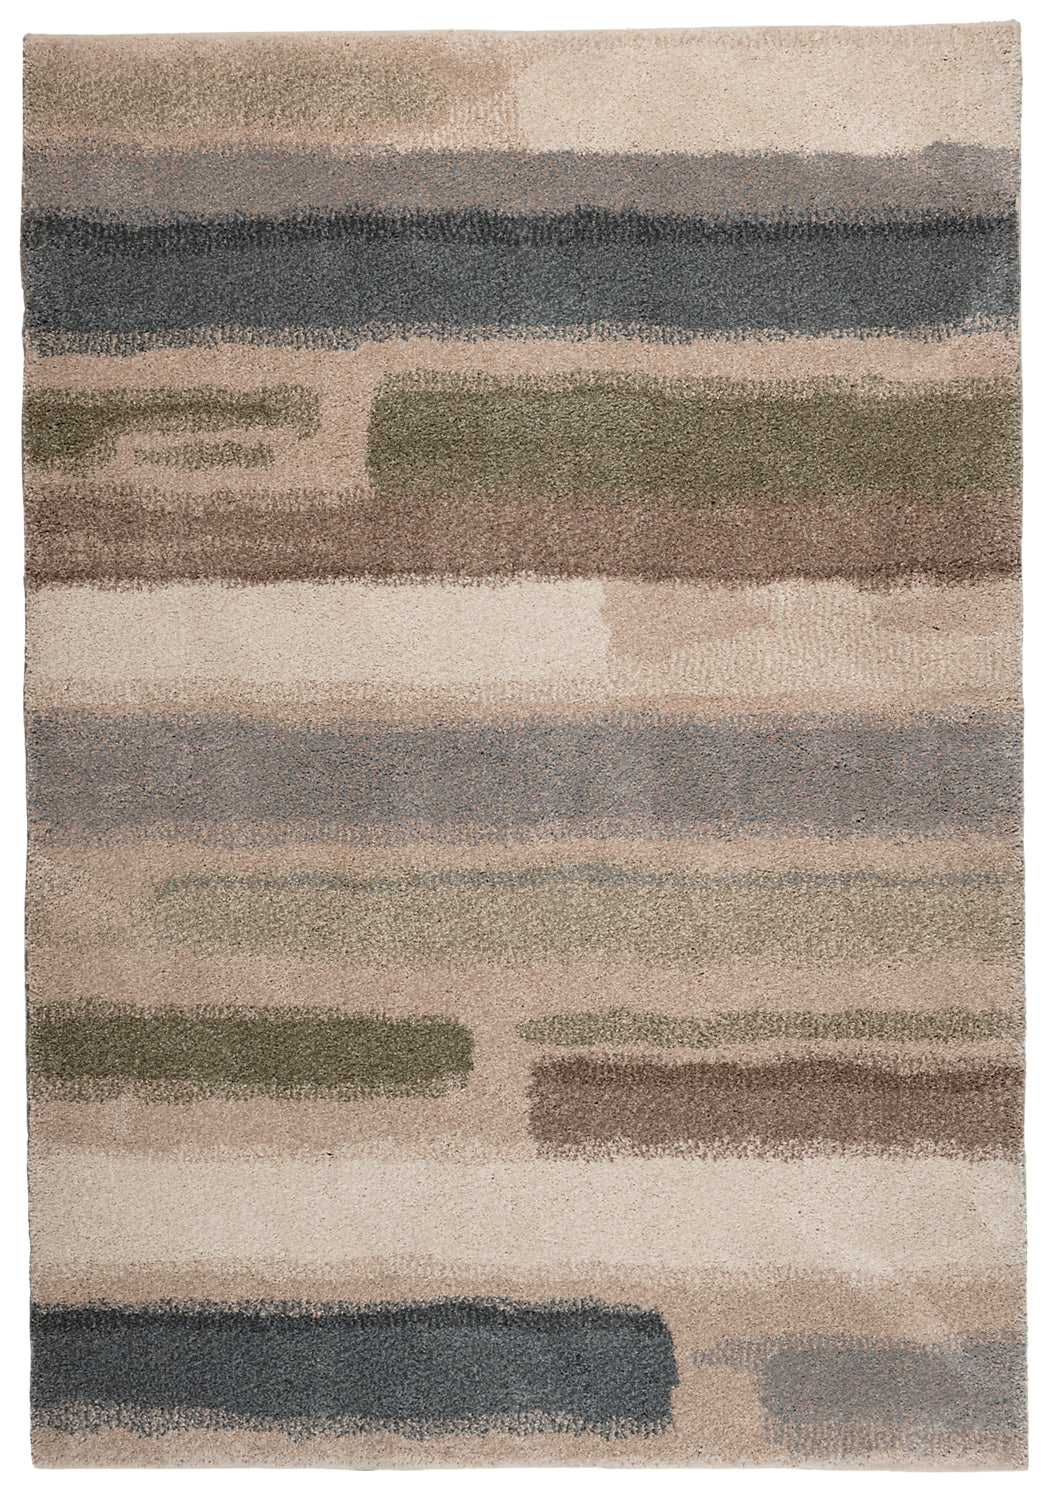 Soft Rock 5 3 X 7 6 Rug The Brick